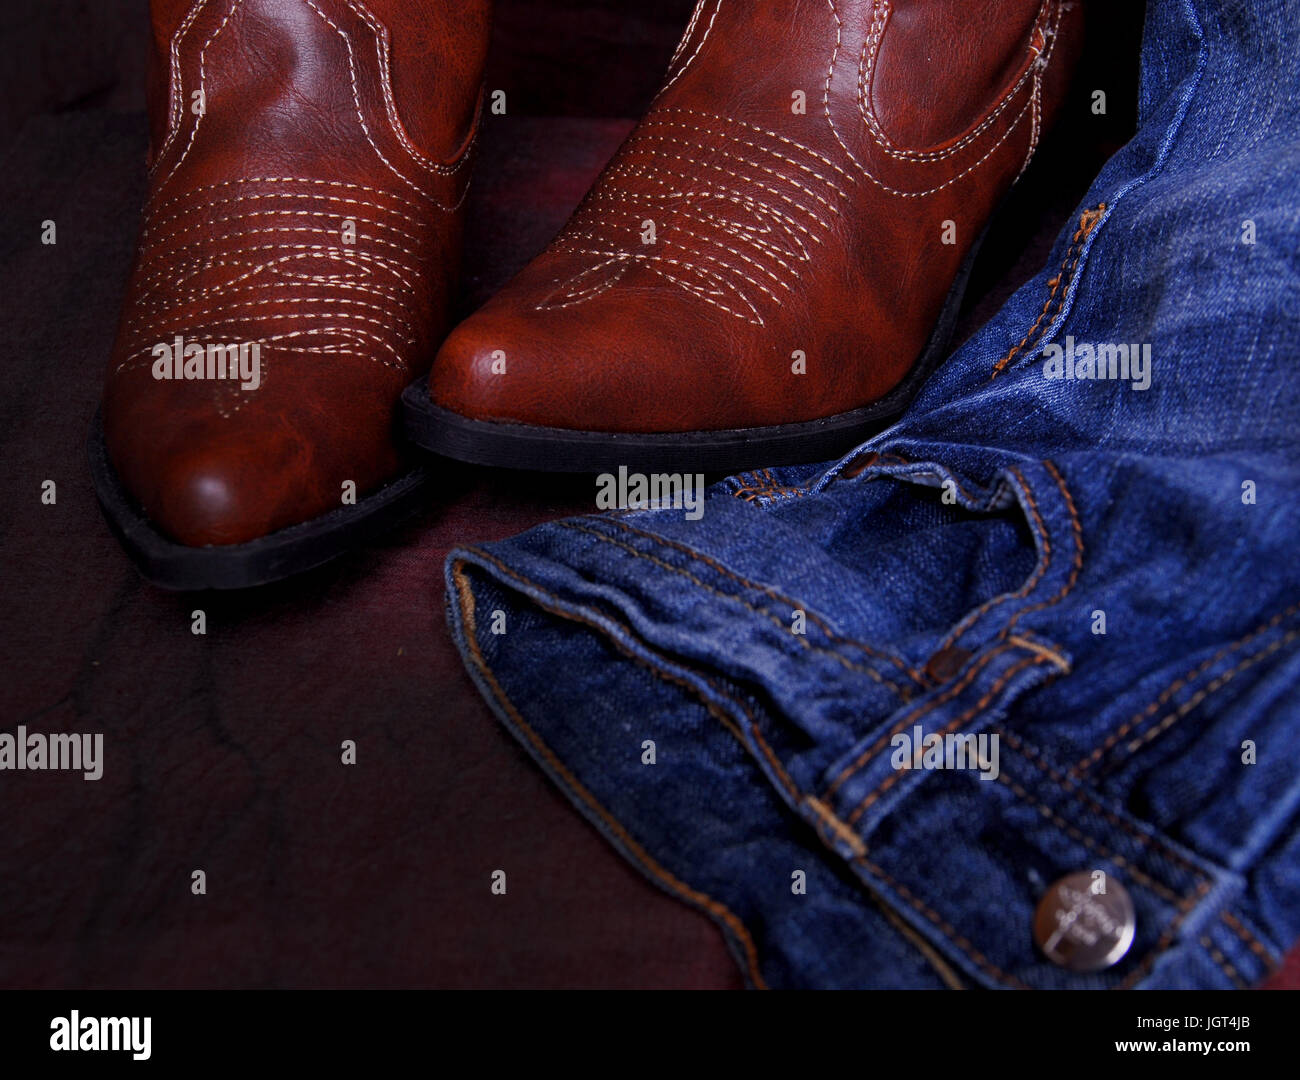 Western look, blue jeans and cowboy boots. - Stock Image